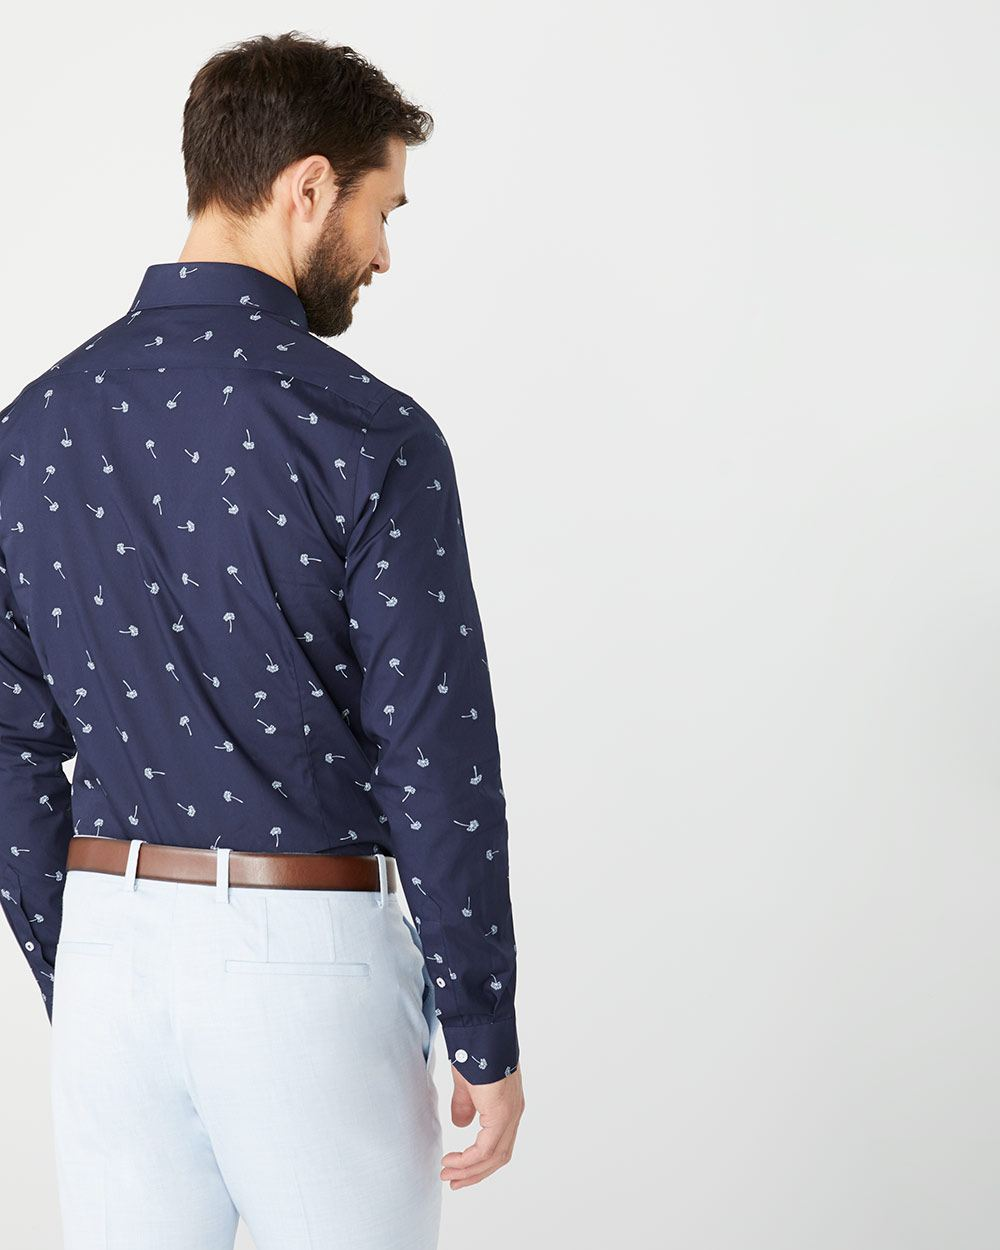 Slim Fit dandelion print dress shirt